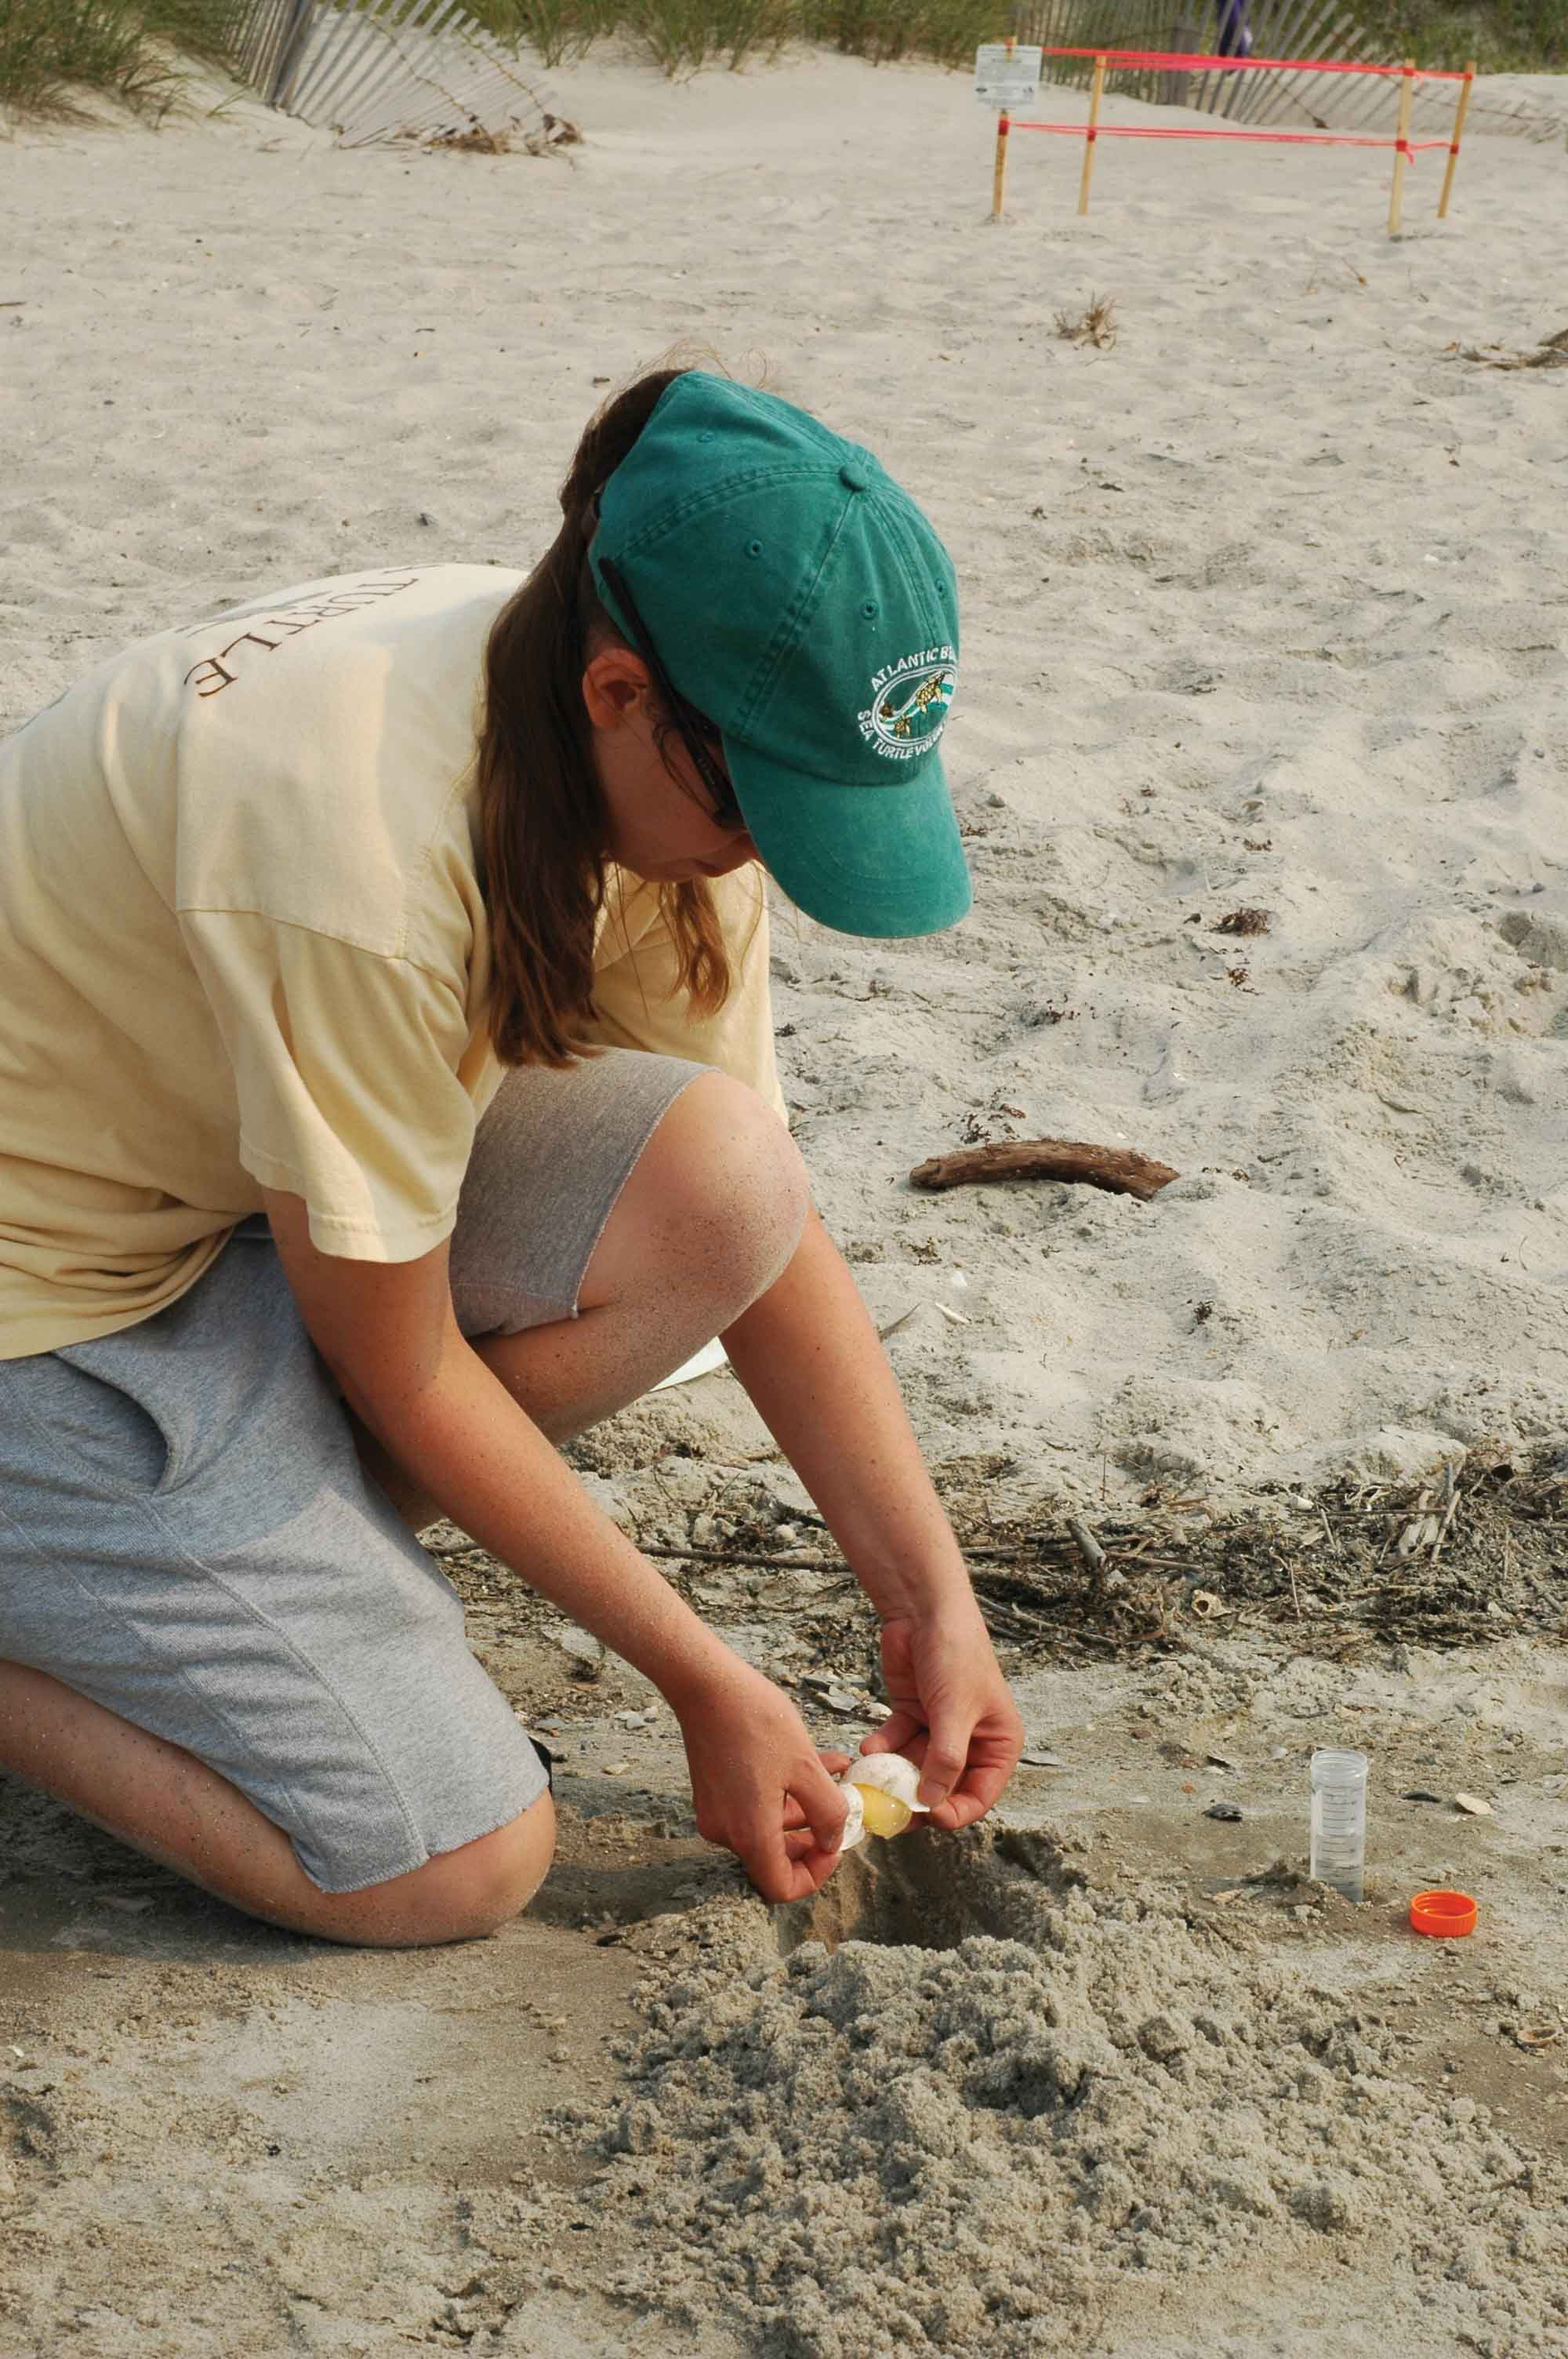 A researcher collects an eggshell for genetic analysis to identify the individual turtle that laid the eggs. © MATTHEW GODFREY / NCWRC